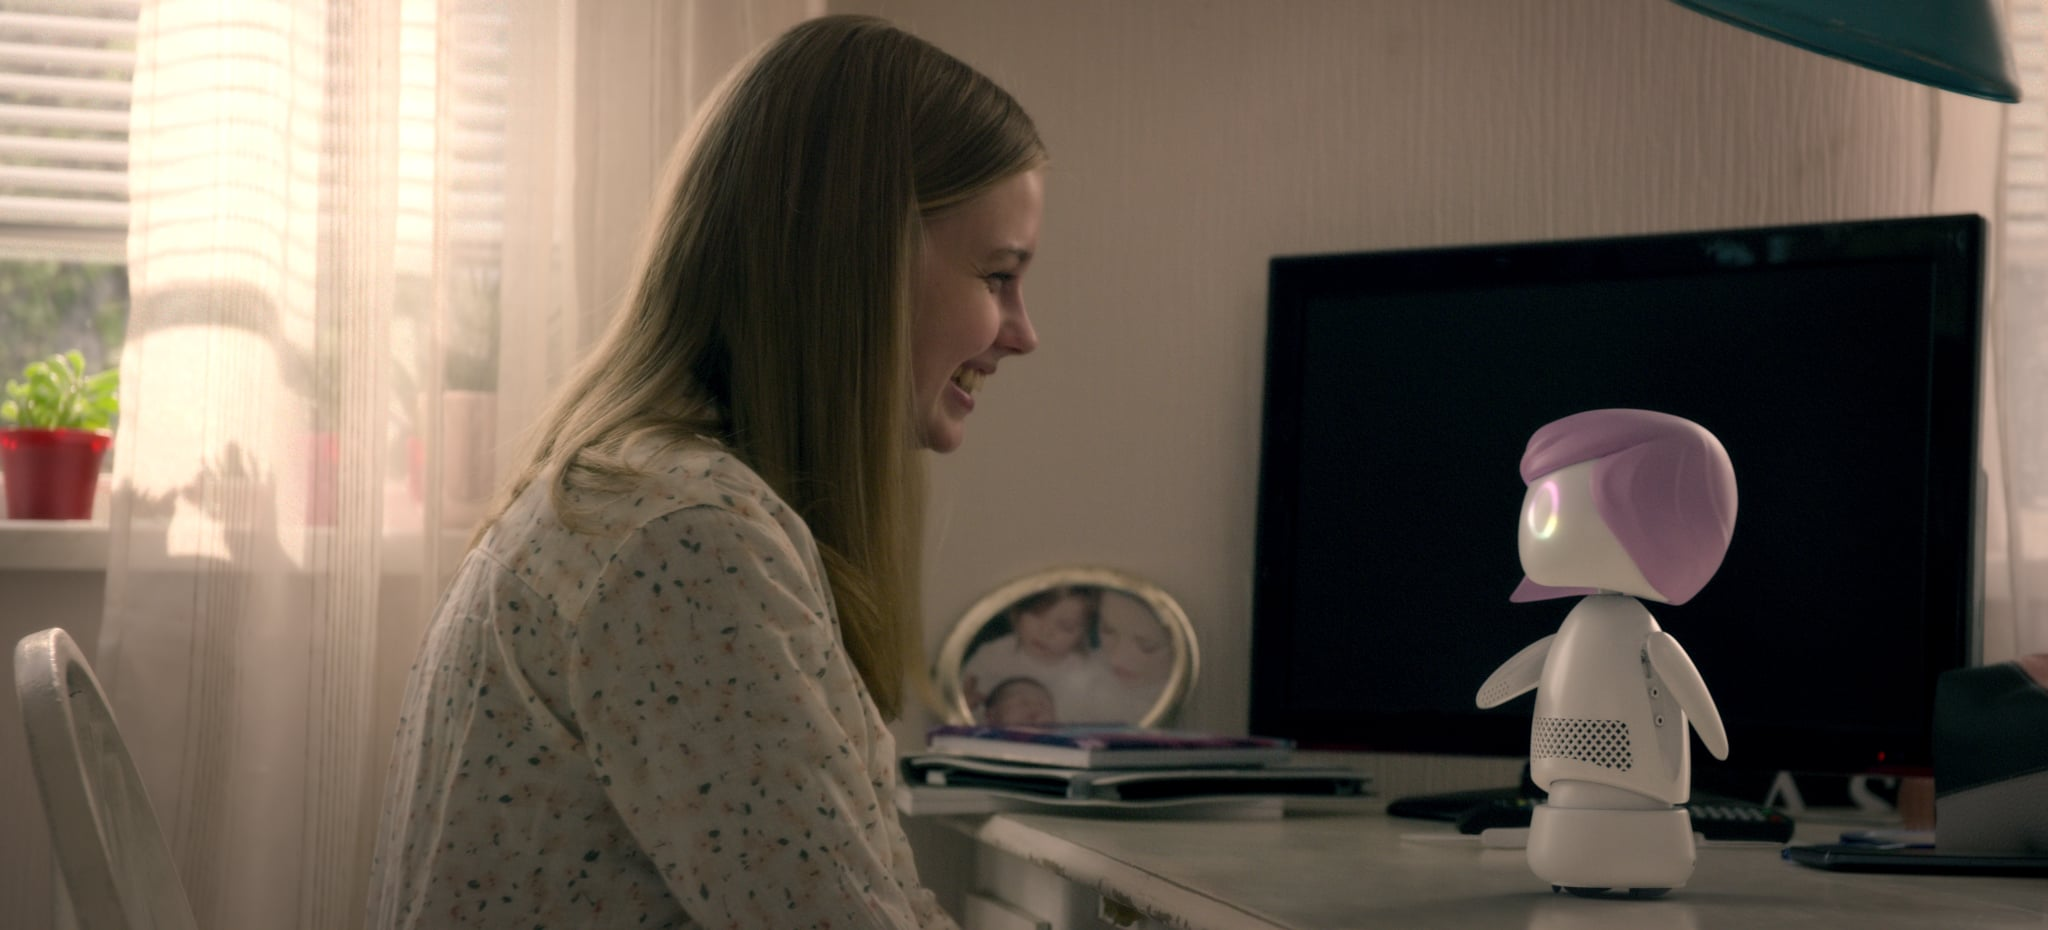 BLACK MIRROR, Angourie Rice, (Season 5, aired June 5, 2019). photo: Netflix / courtesy Everett Collection